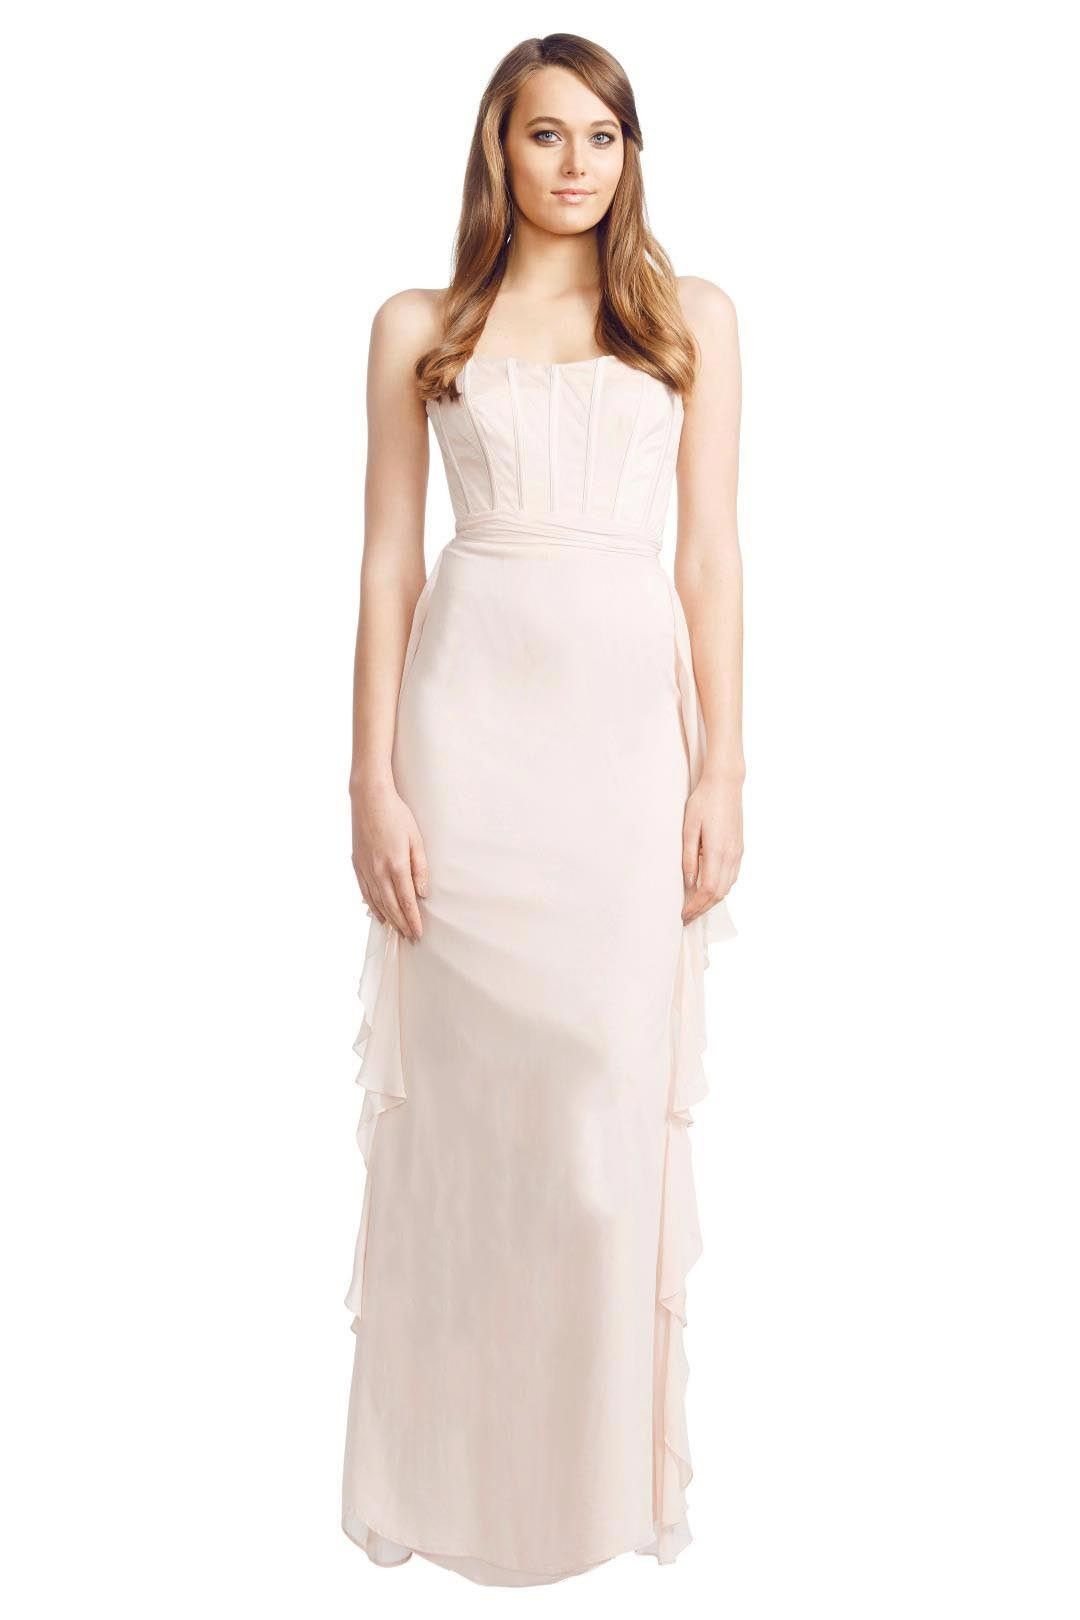 Badgley Mischka - Corset Dress - Blush Pink - Front